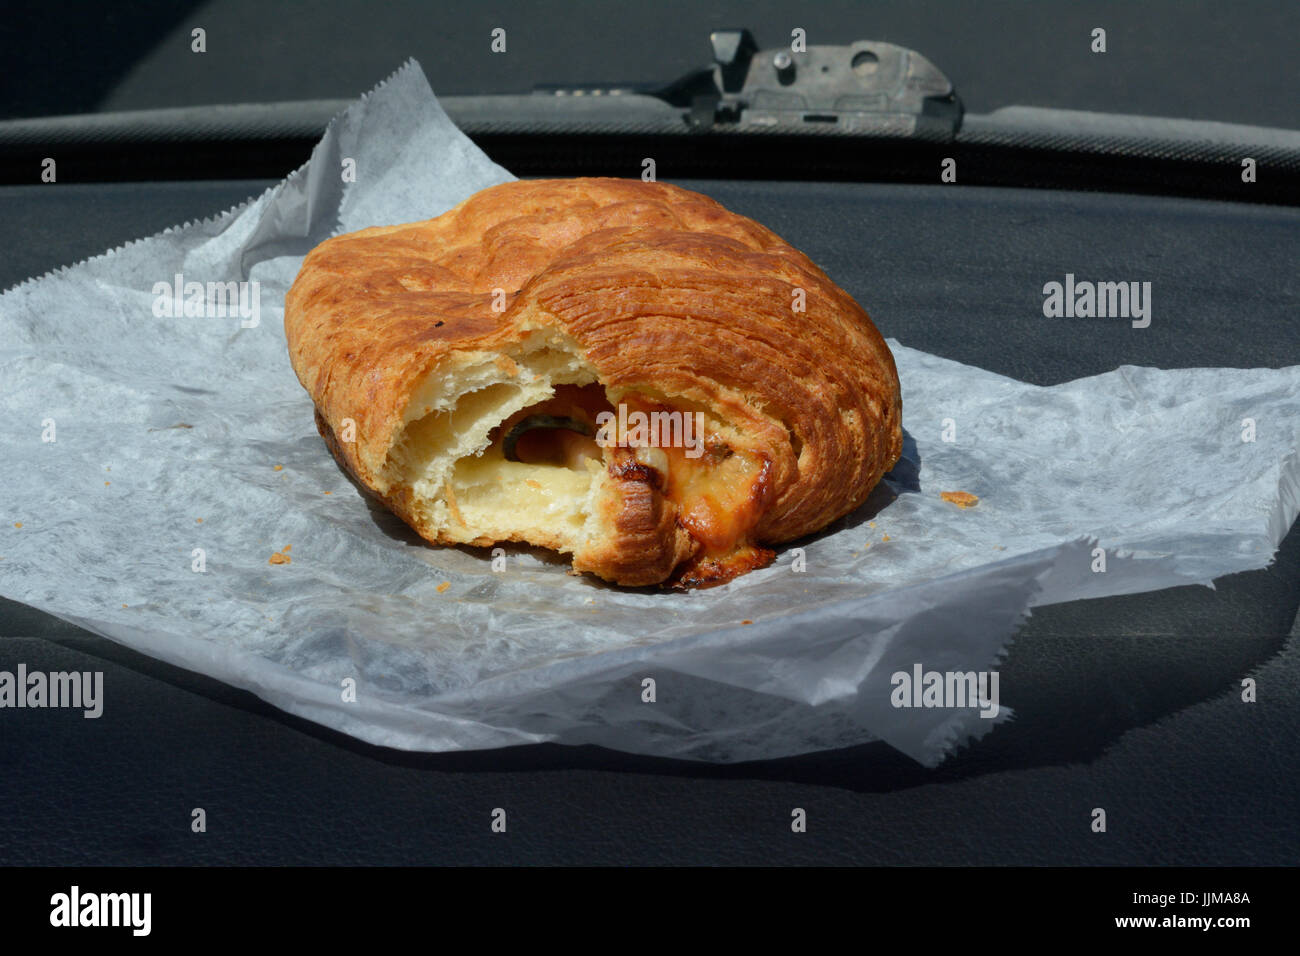 Breakfast on the go of partially eaten bakery ham and Swiss cheese croissant on automobile dashboard - Stock Image